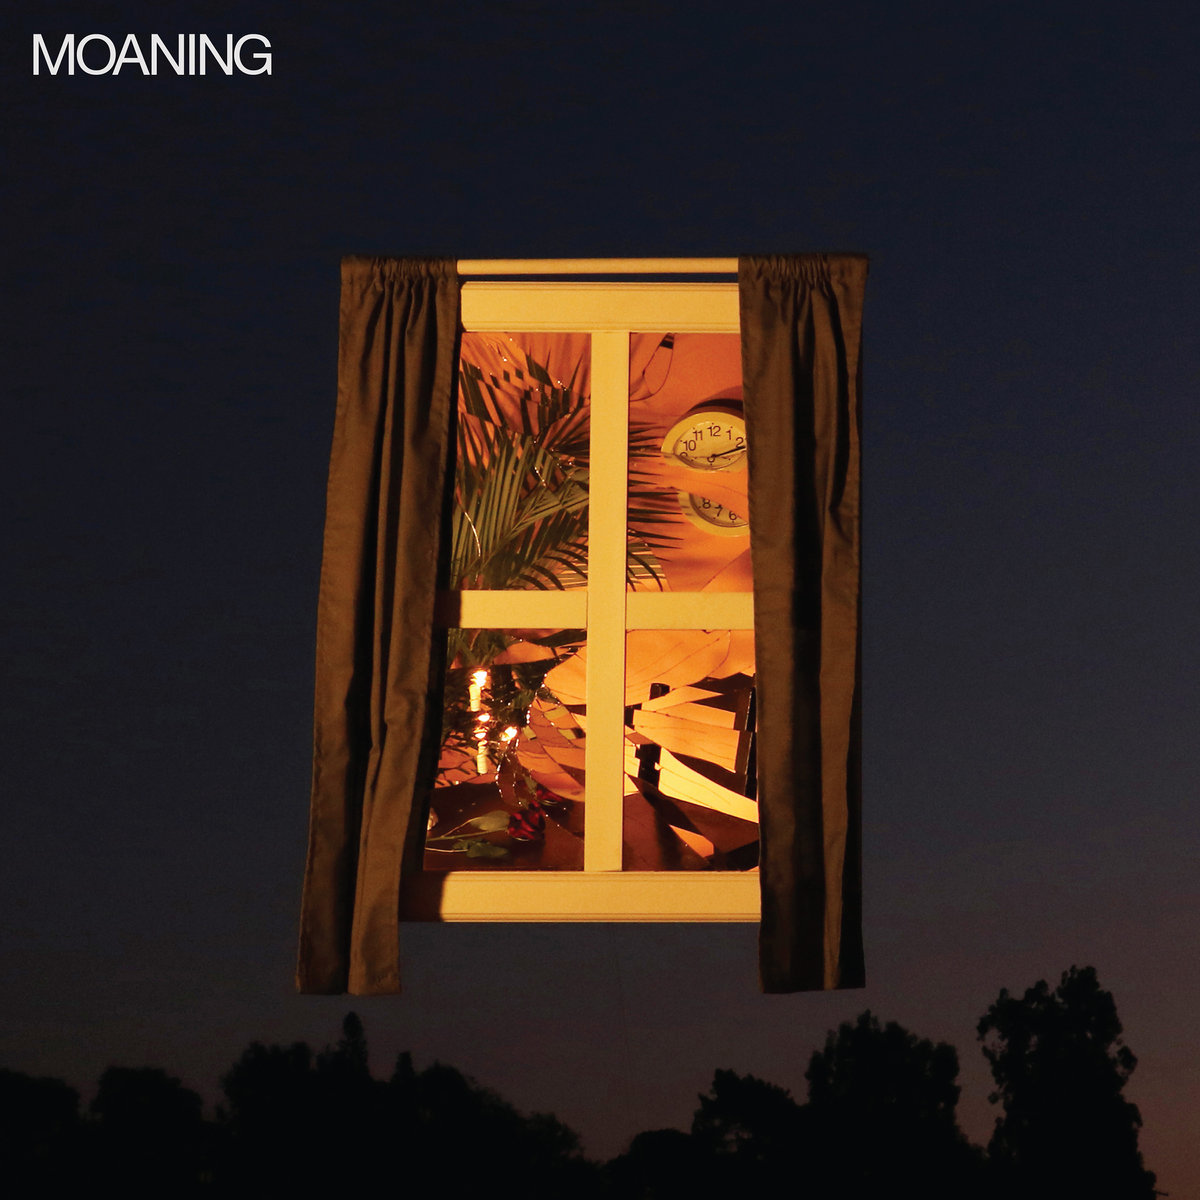 Moaning / Moaning(Ltd Loser Edition LP)